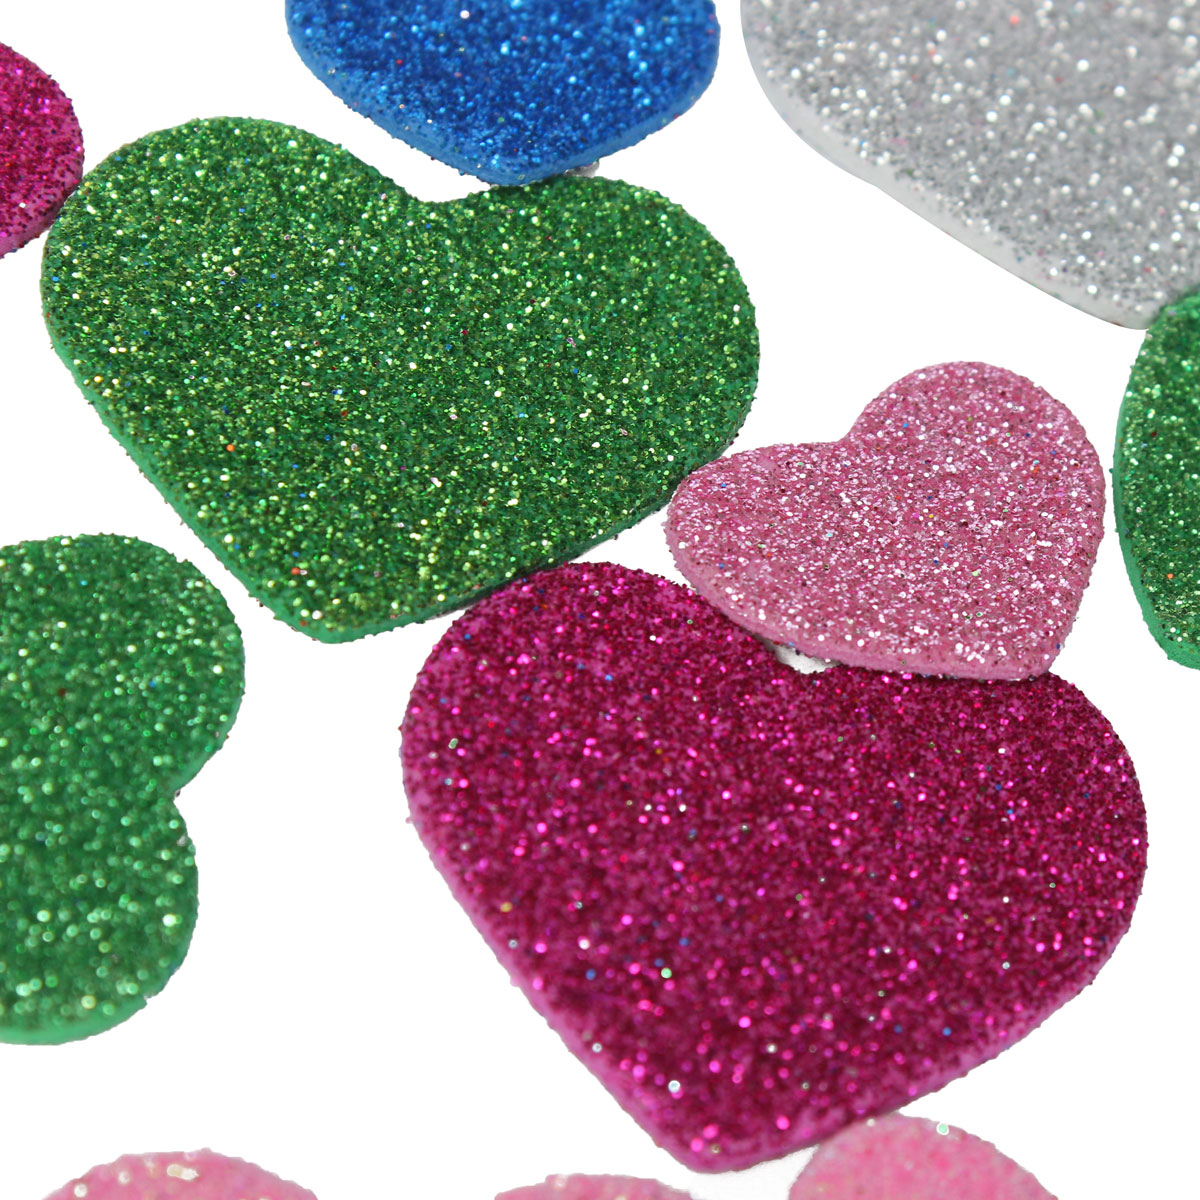 30Pcs Assorted Glitter Shapes Hearts Stars Round Flowers Foam Stickers DIY Craft